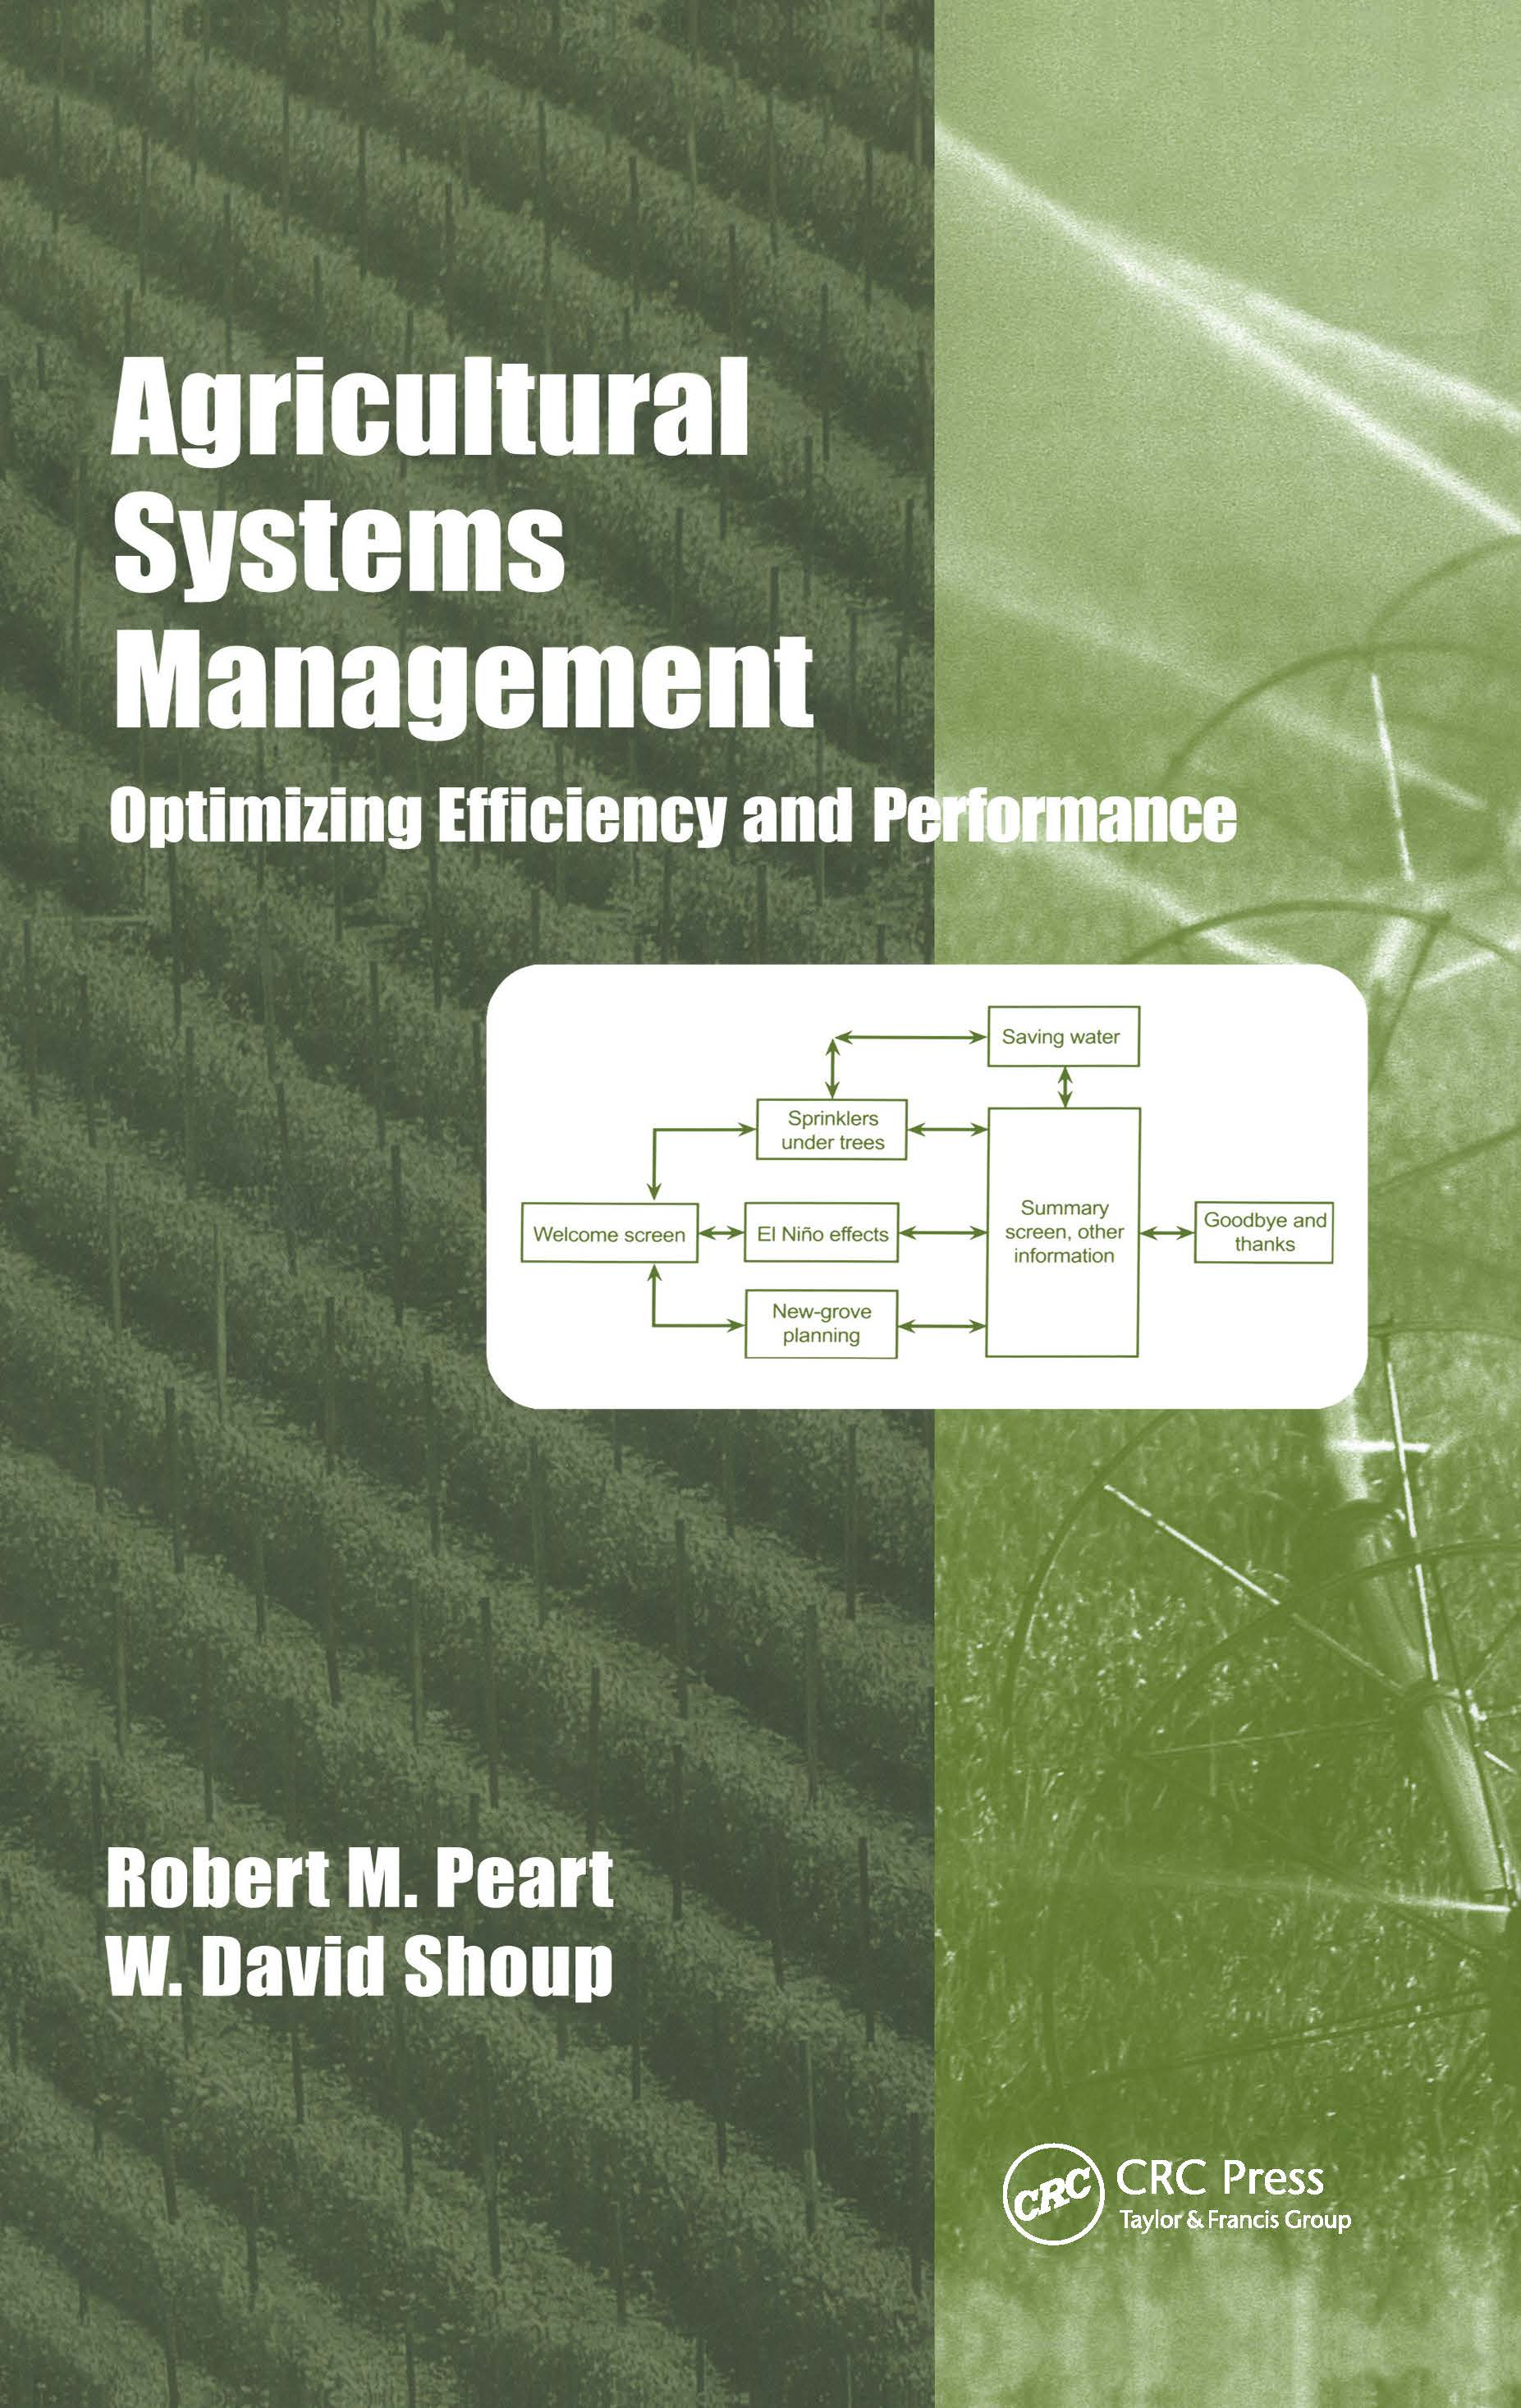 Agricultural Systems Management: Optimizing Efficiency and Performance book cover